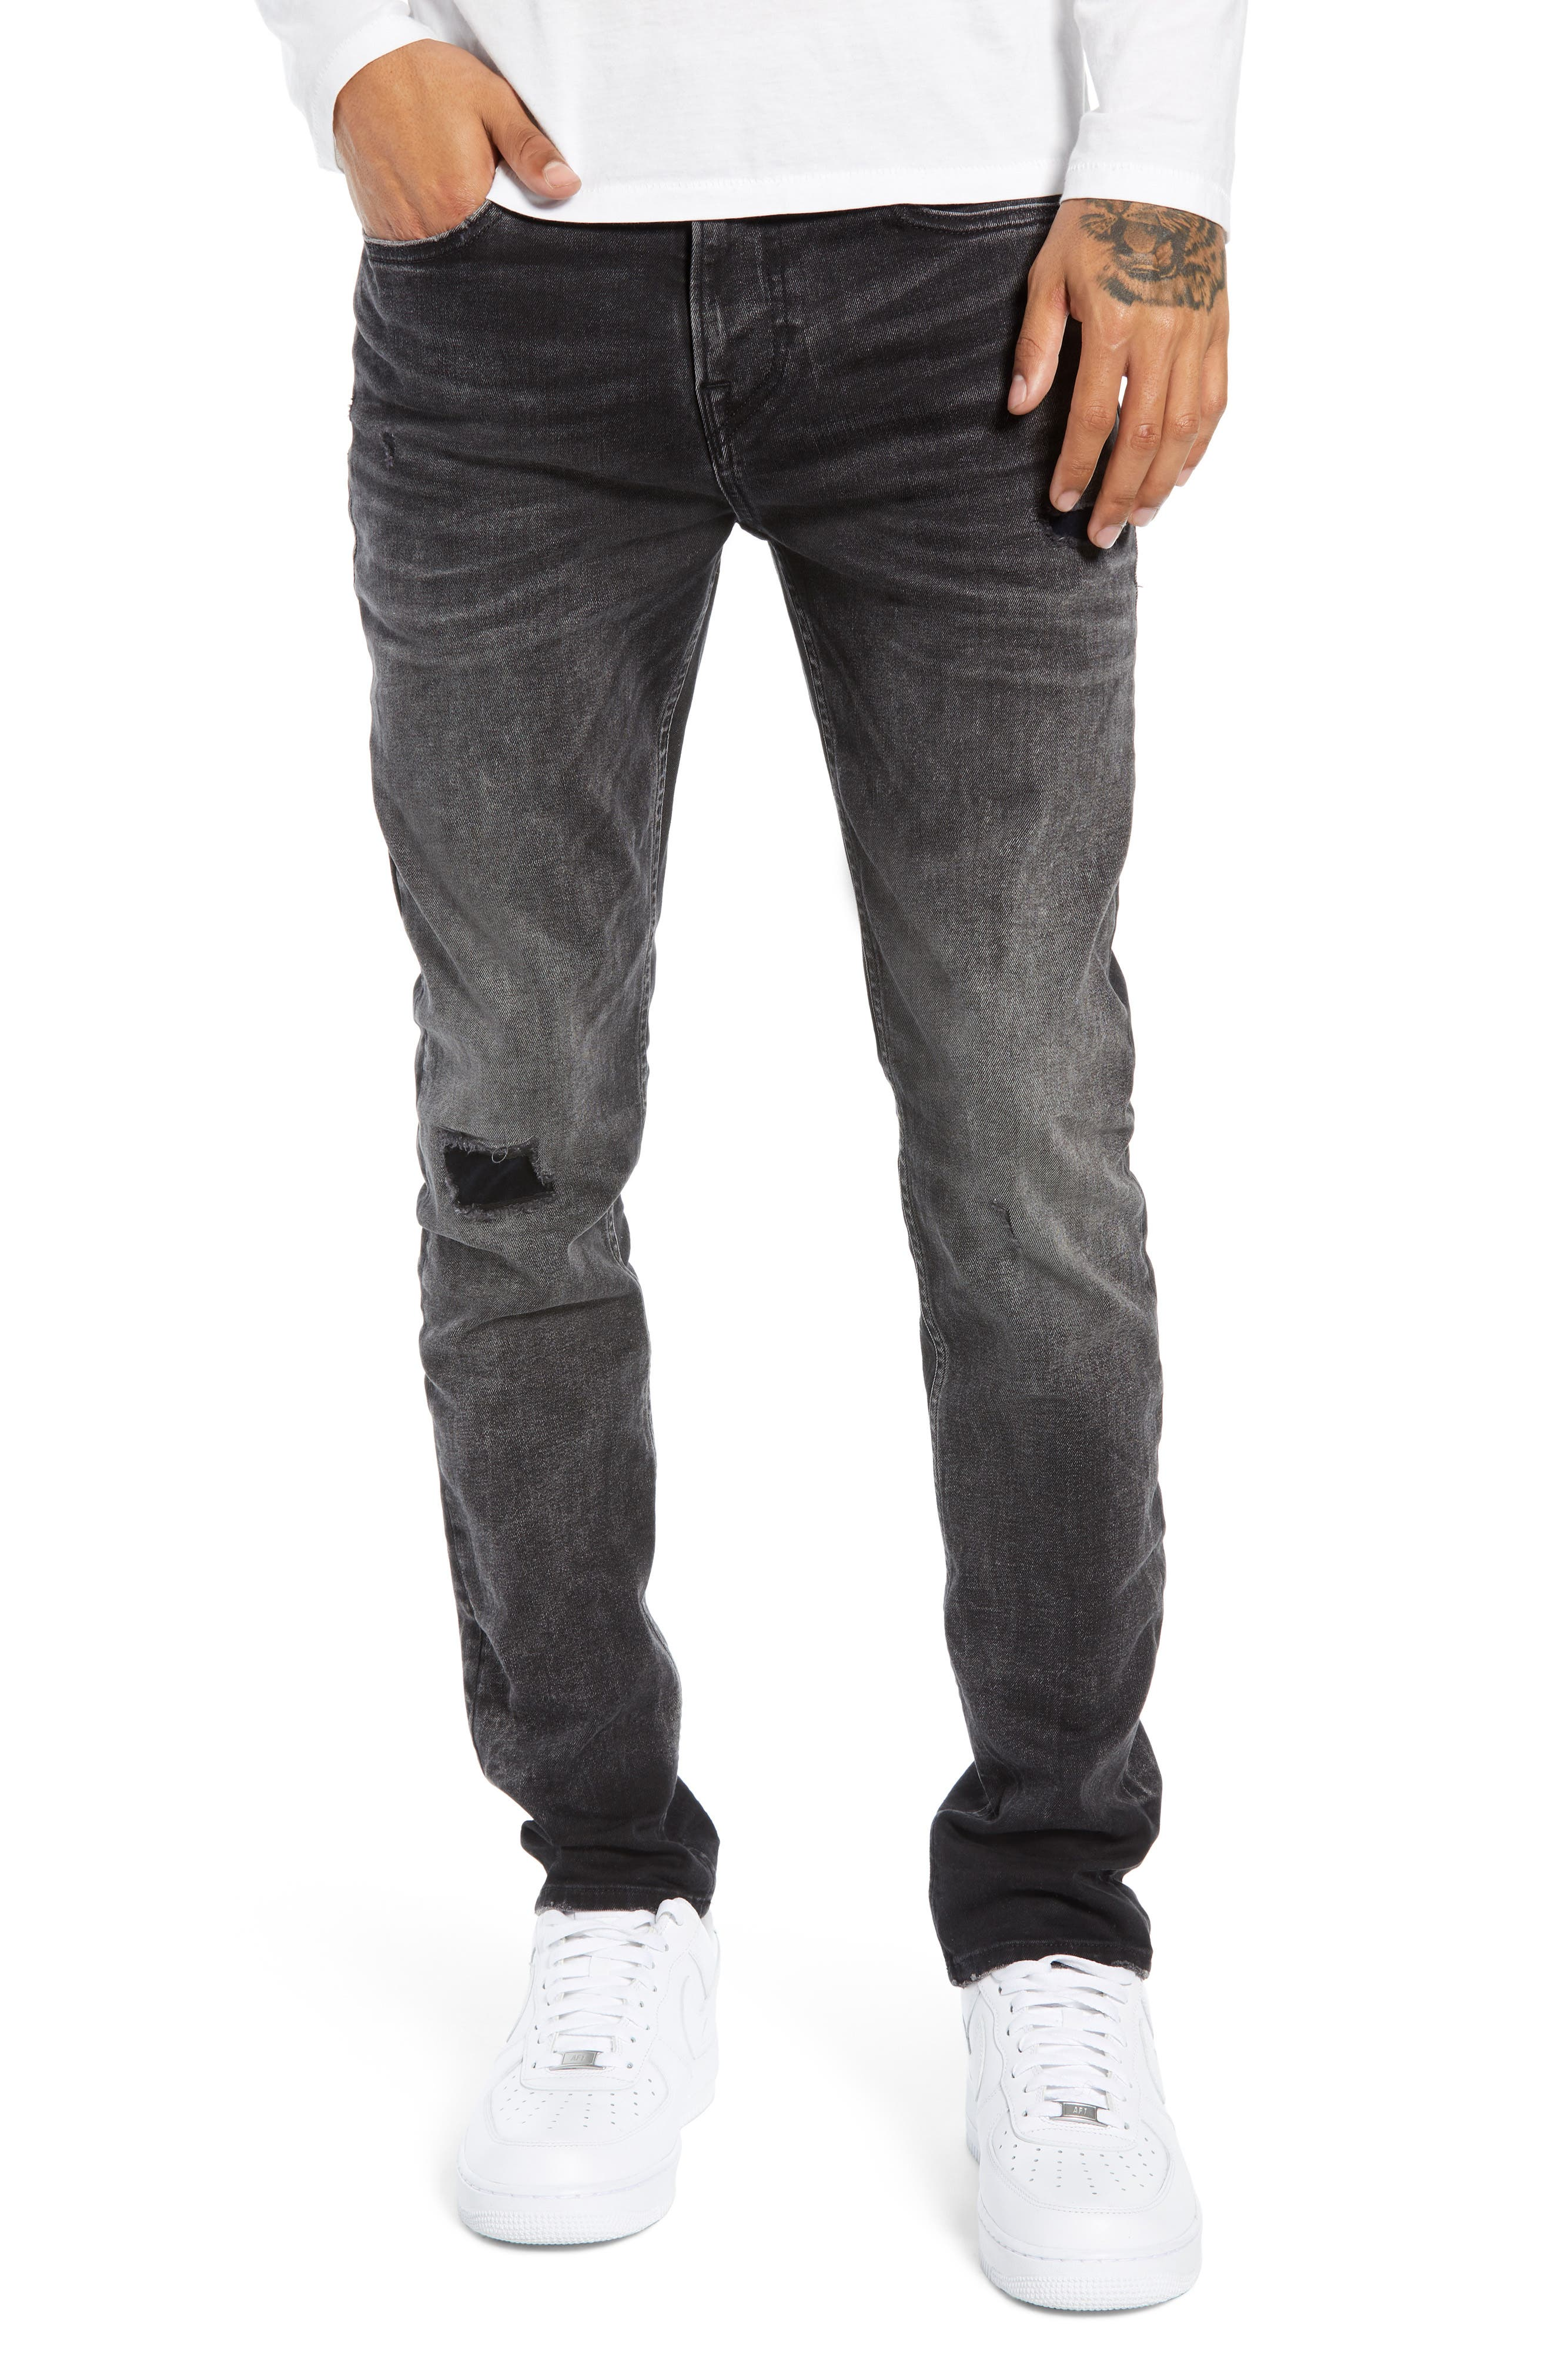 HUDSON JEANS Axl Skinny Fit Jeans, Main, color, DELUXE